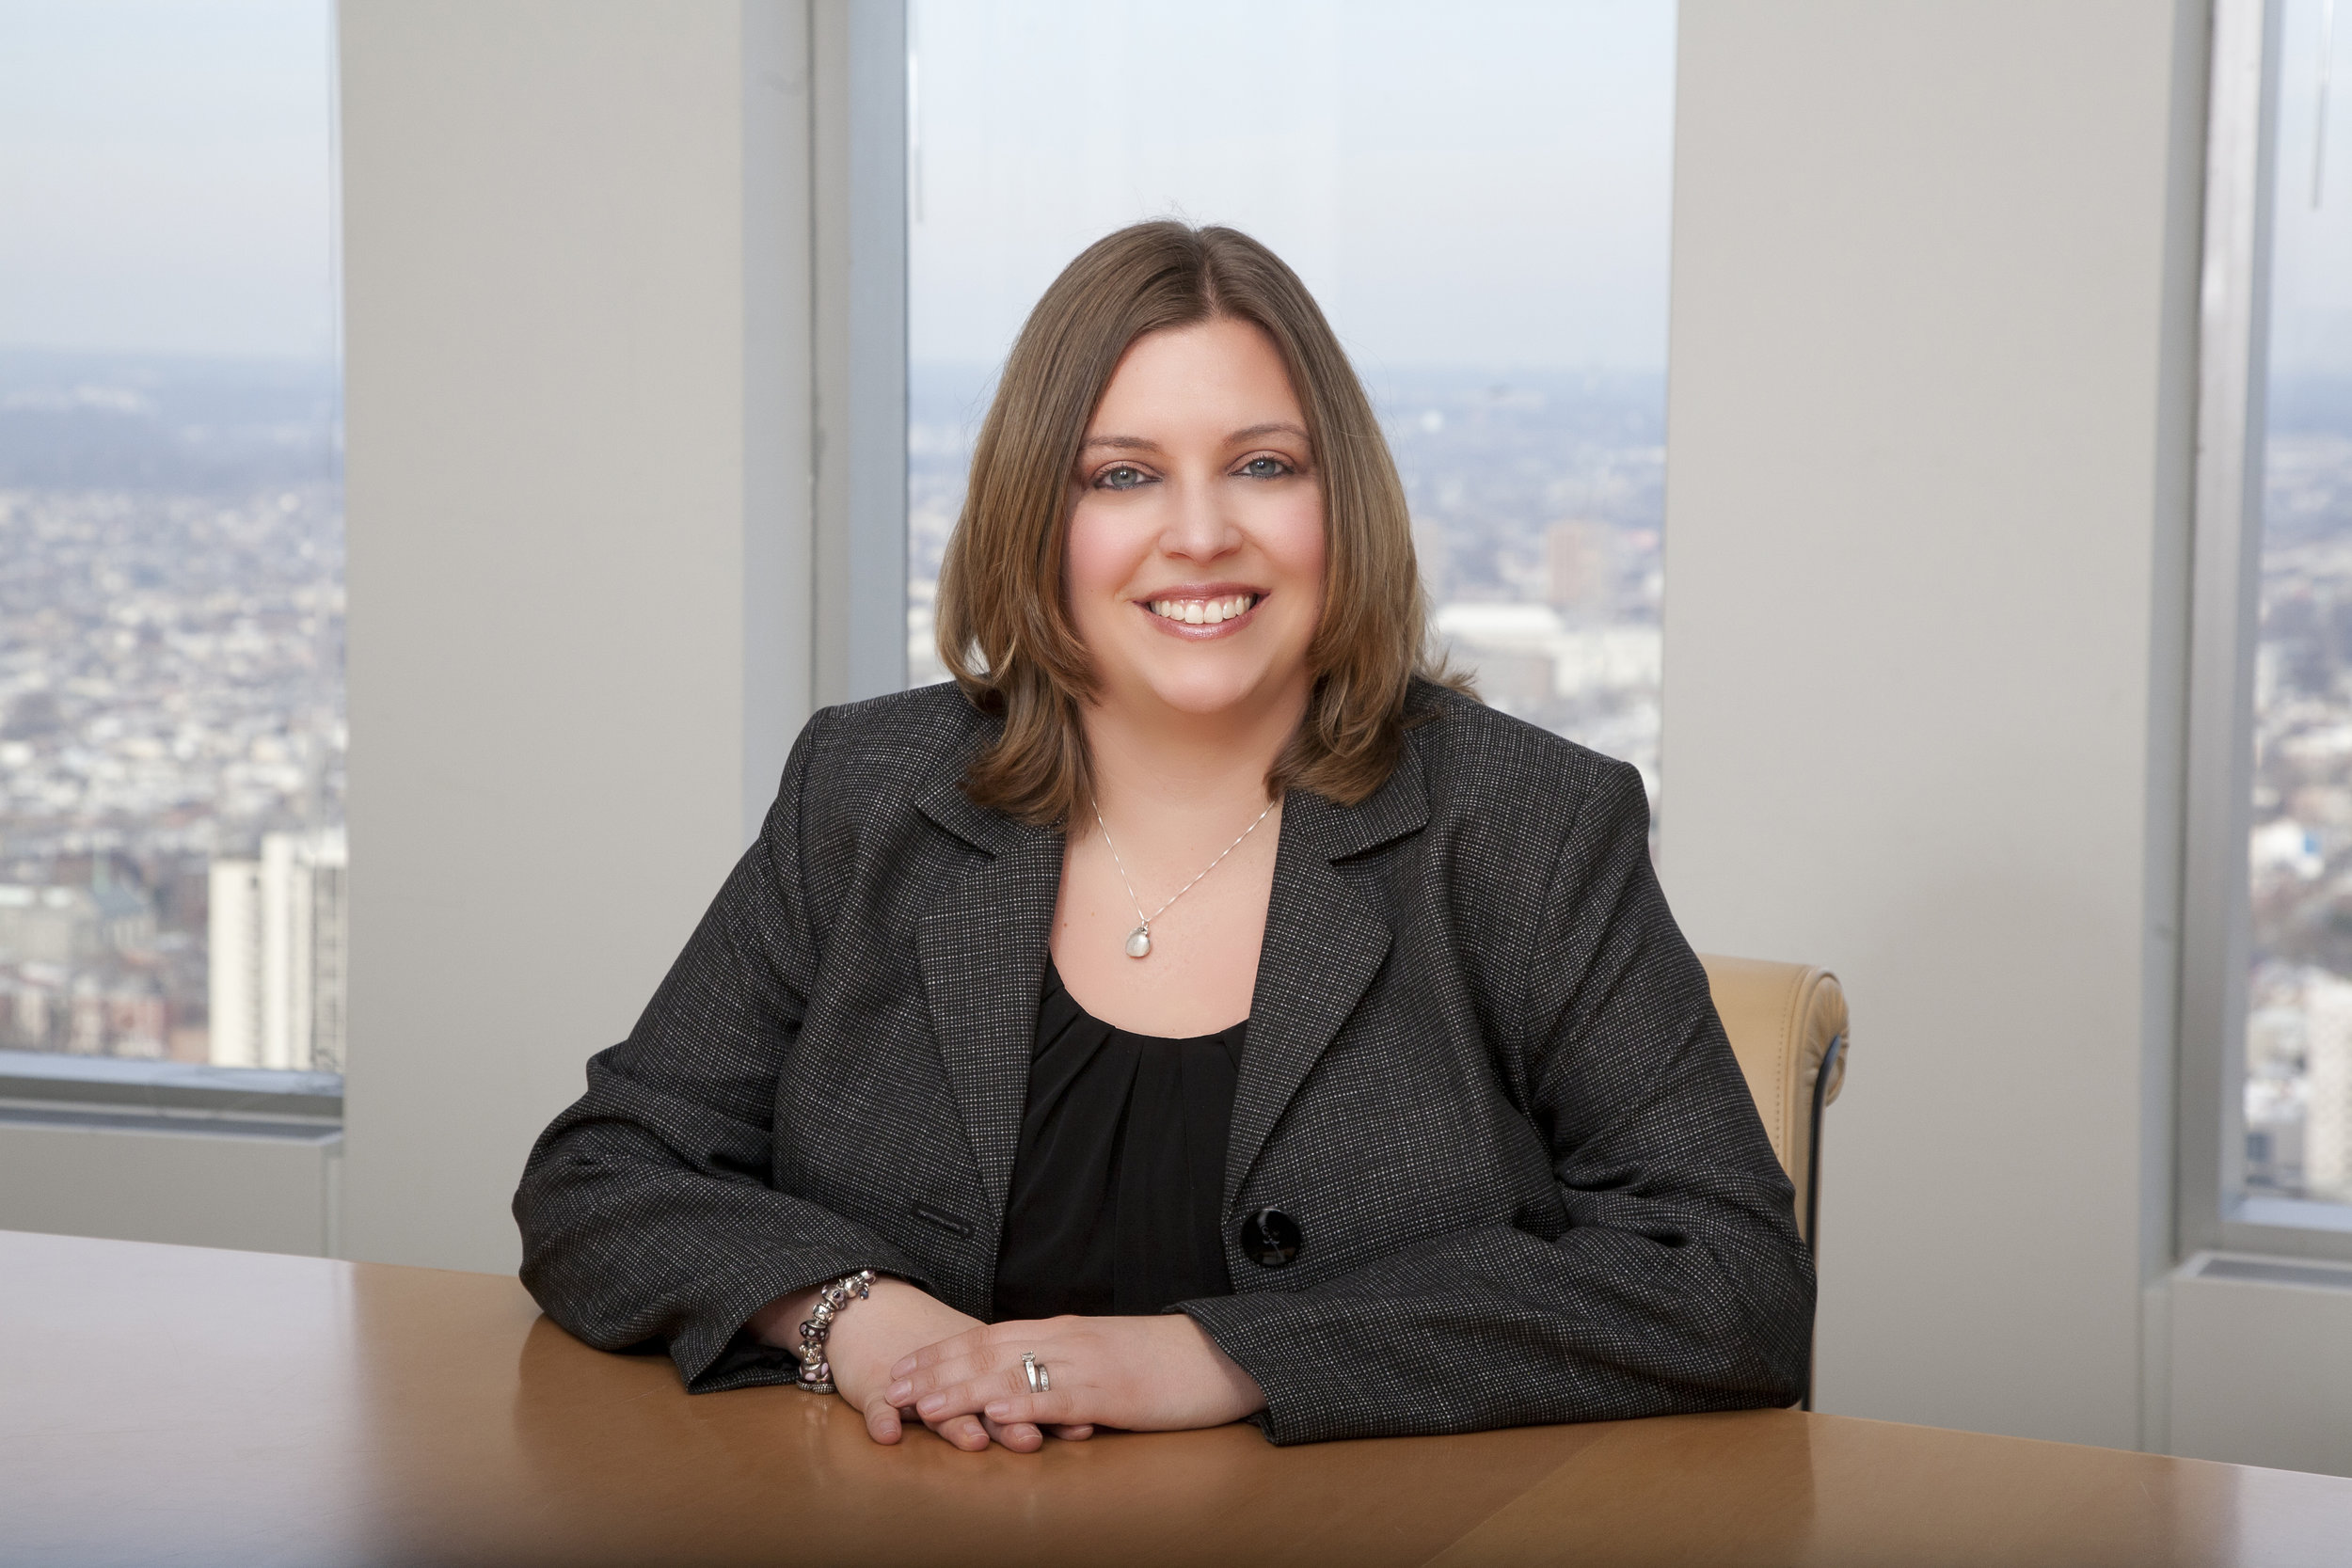 Kristen Zdanavage  Principal |Finance  A key part of the Finance team, Kristen is responsible for all financial operations of the firm—from managing the budget to monitoring revenue and expenses to financial reporting. In addition to her MBA in Accounting from Temple University, Kristen holds a BA in Urban Studies from the University of Pennsylvania.